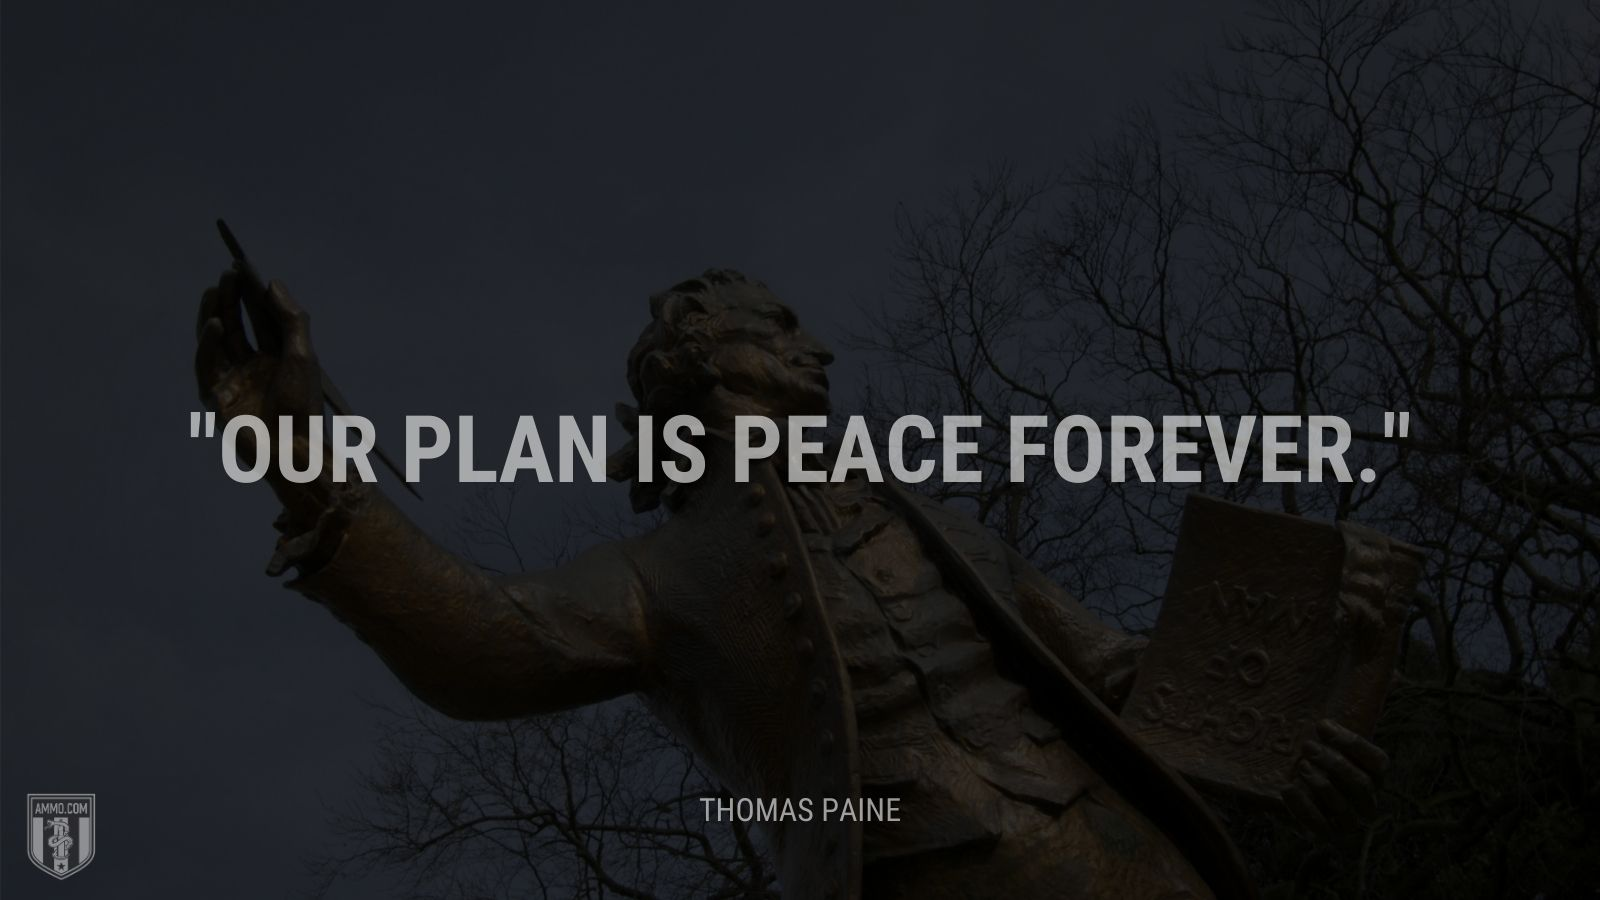 """Our plan is peace forever."" - Thomas Paine"